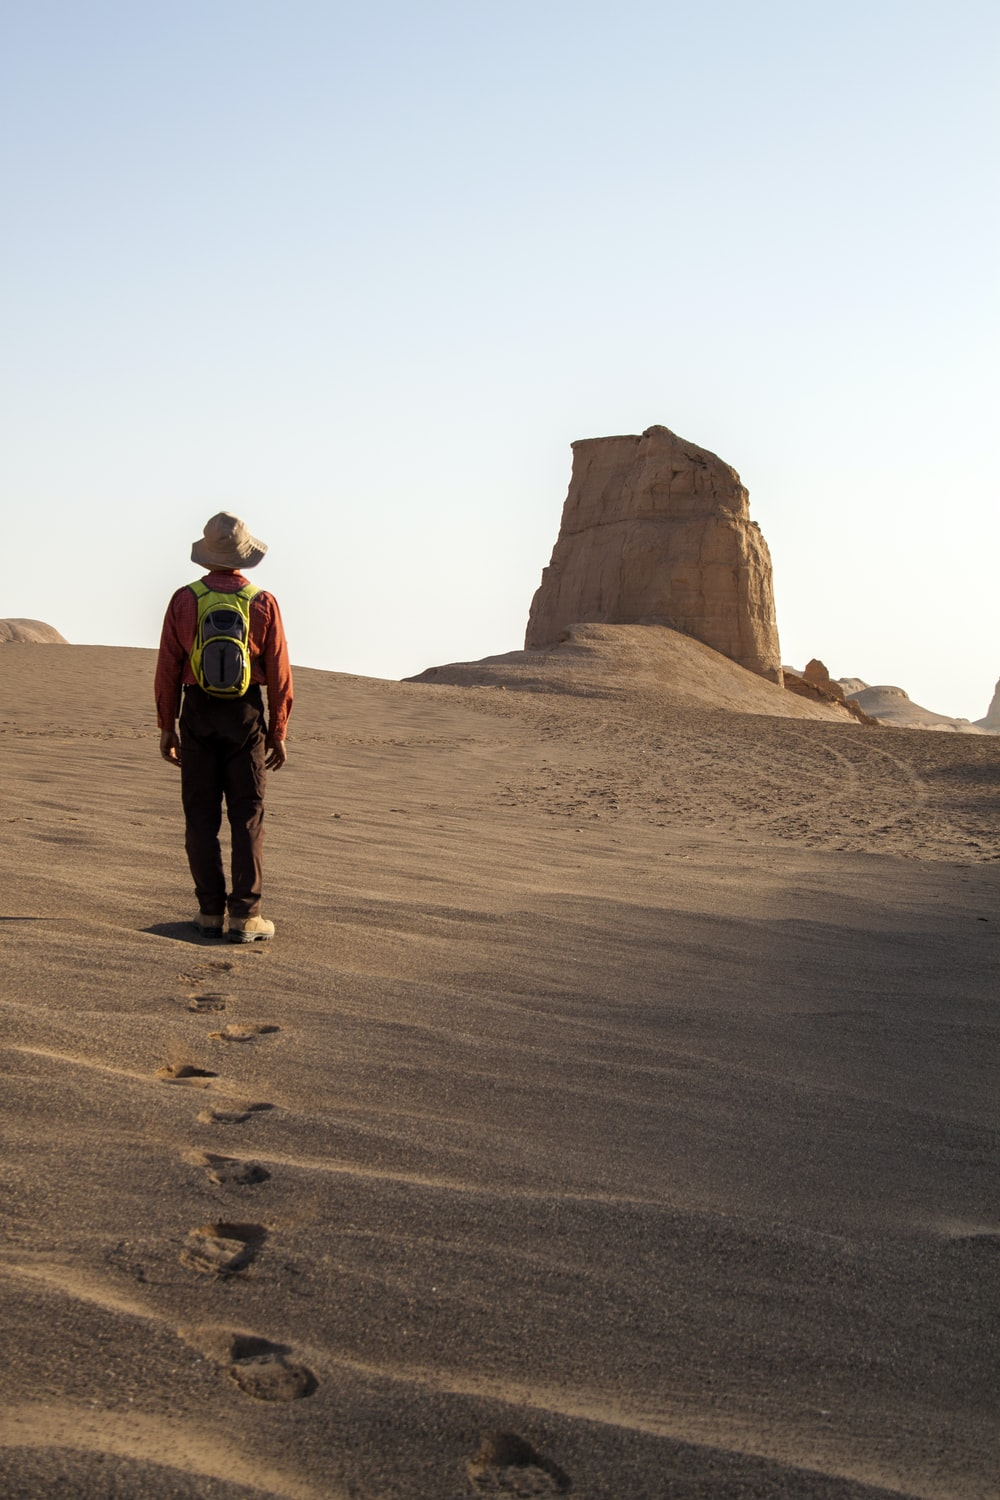 man wearing hat walking on desert